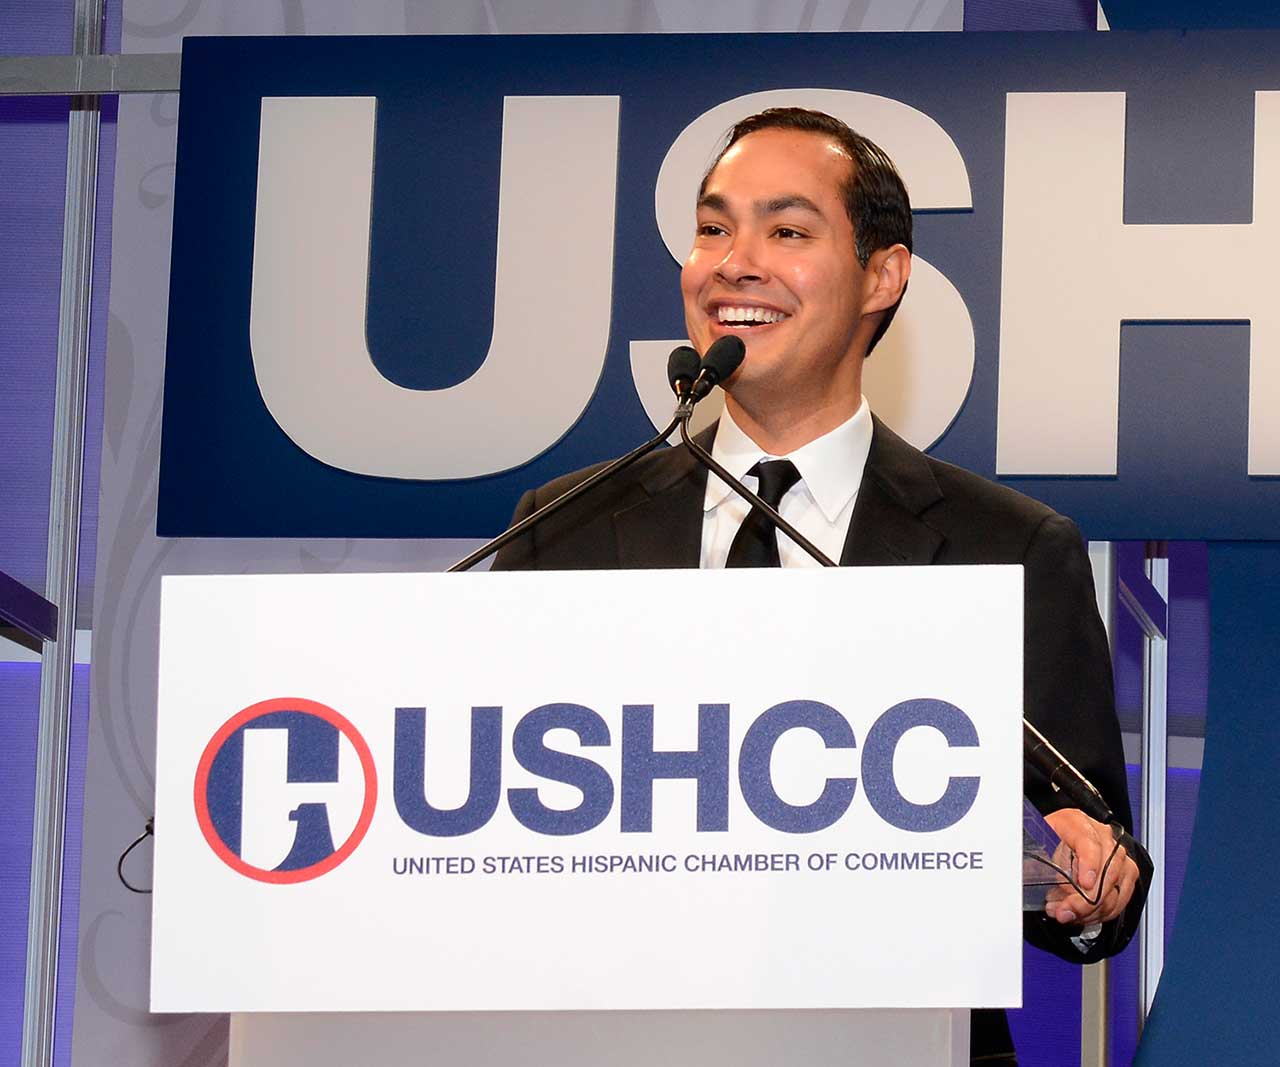 A speaker at the USHCC Convention